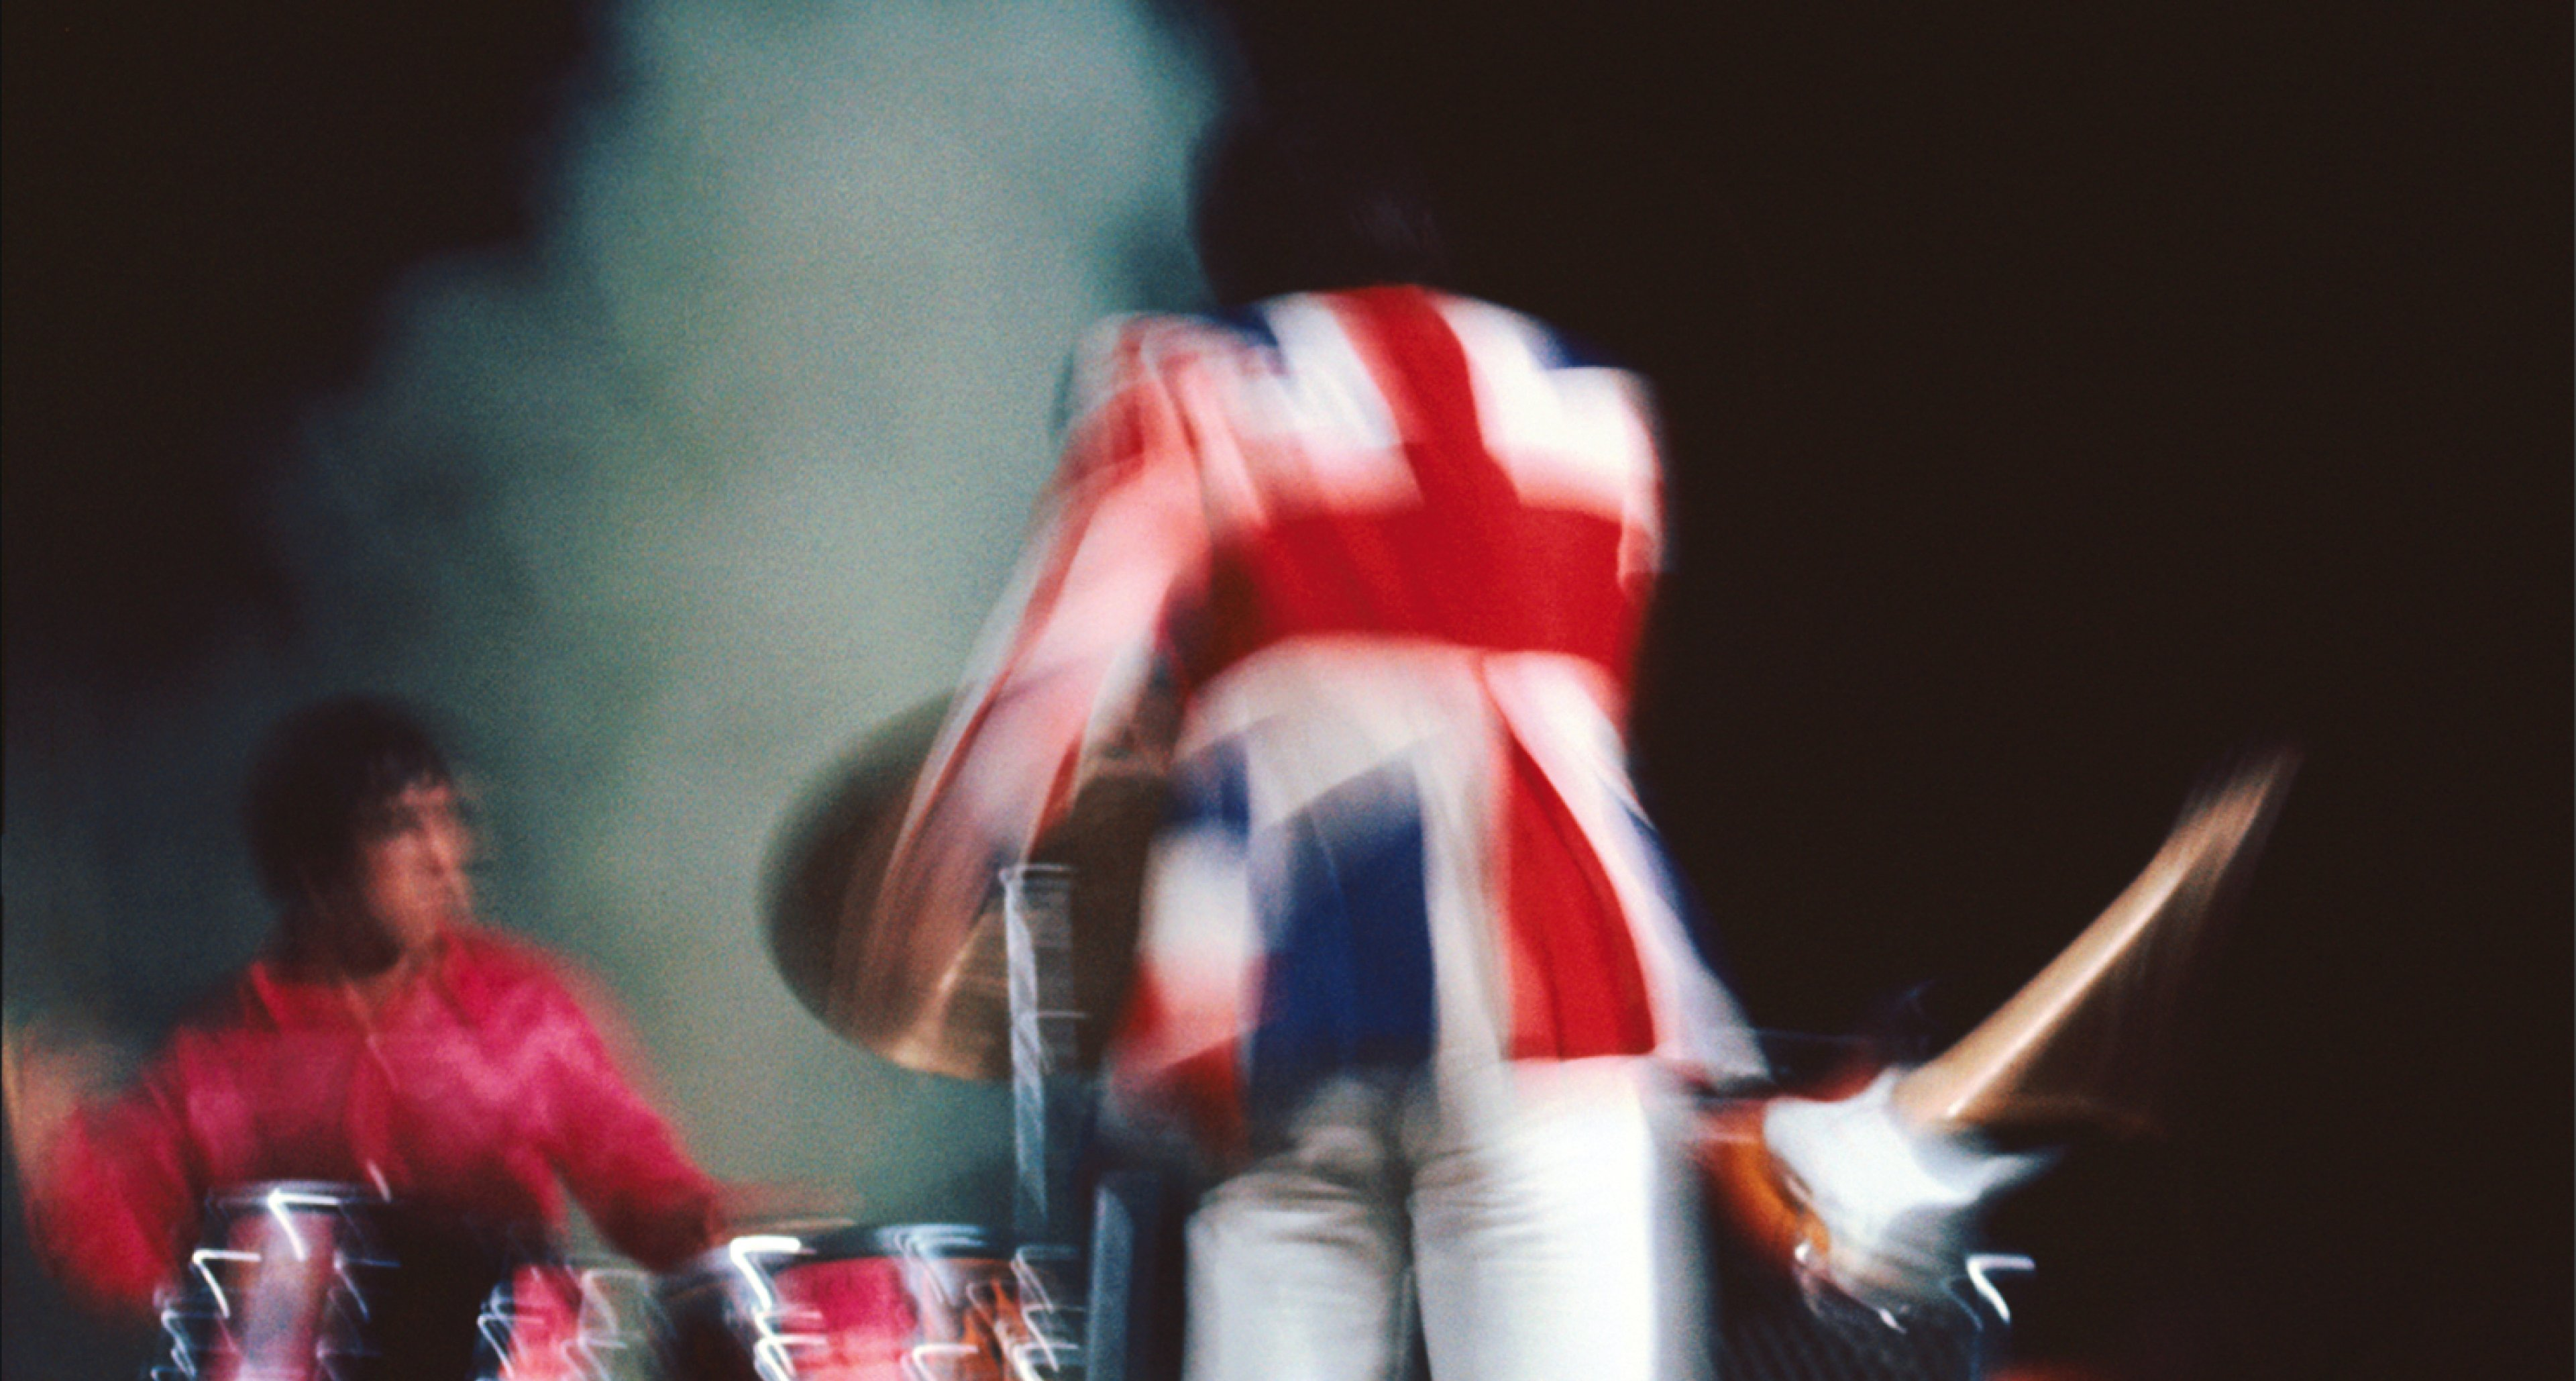 Rule Britannia - Pete Townshend on stage